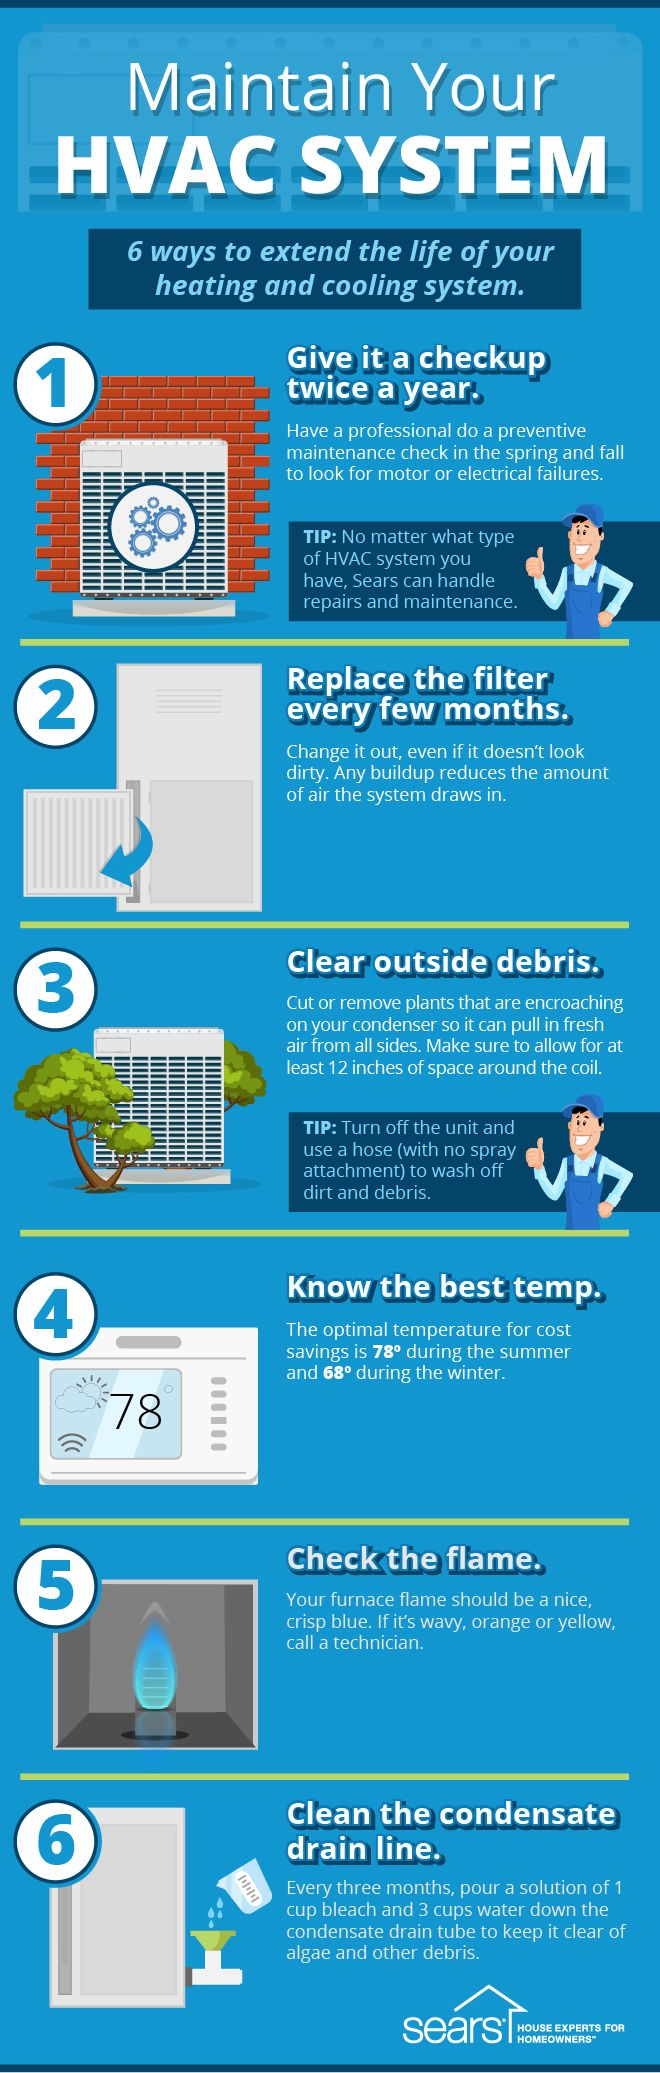 Maintain your heating and cooling system with these six HVAC maintenance tips. Give it a checkup twice a year. Replace the filter every few months. Clear outside debris. Know the best temperatures for cost savings. Check the flame. Clean the condensate drain line. To make sure your HVAC system does its job right, you'll need to give it a dose of TLC every now and again. Click through to the Sears Home Services blog to see if your AC is ready for summer!